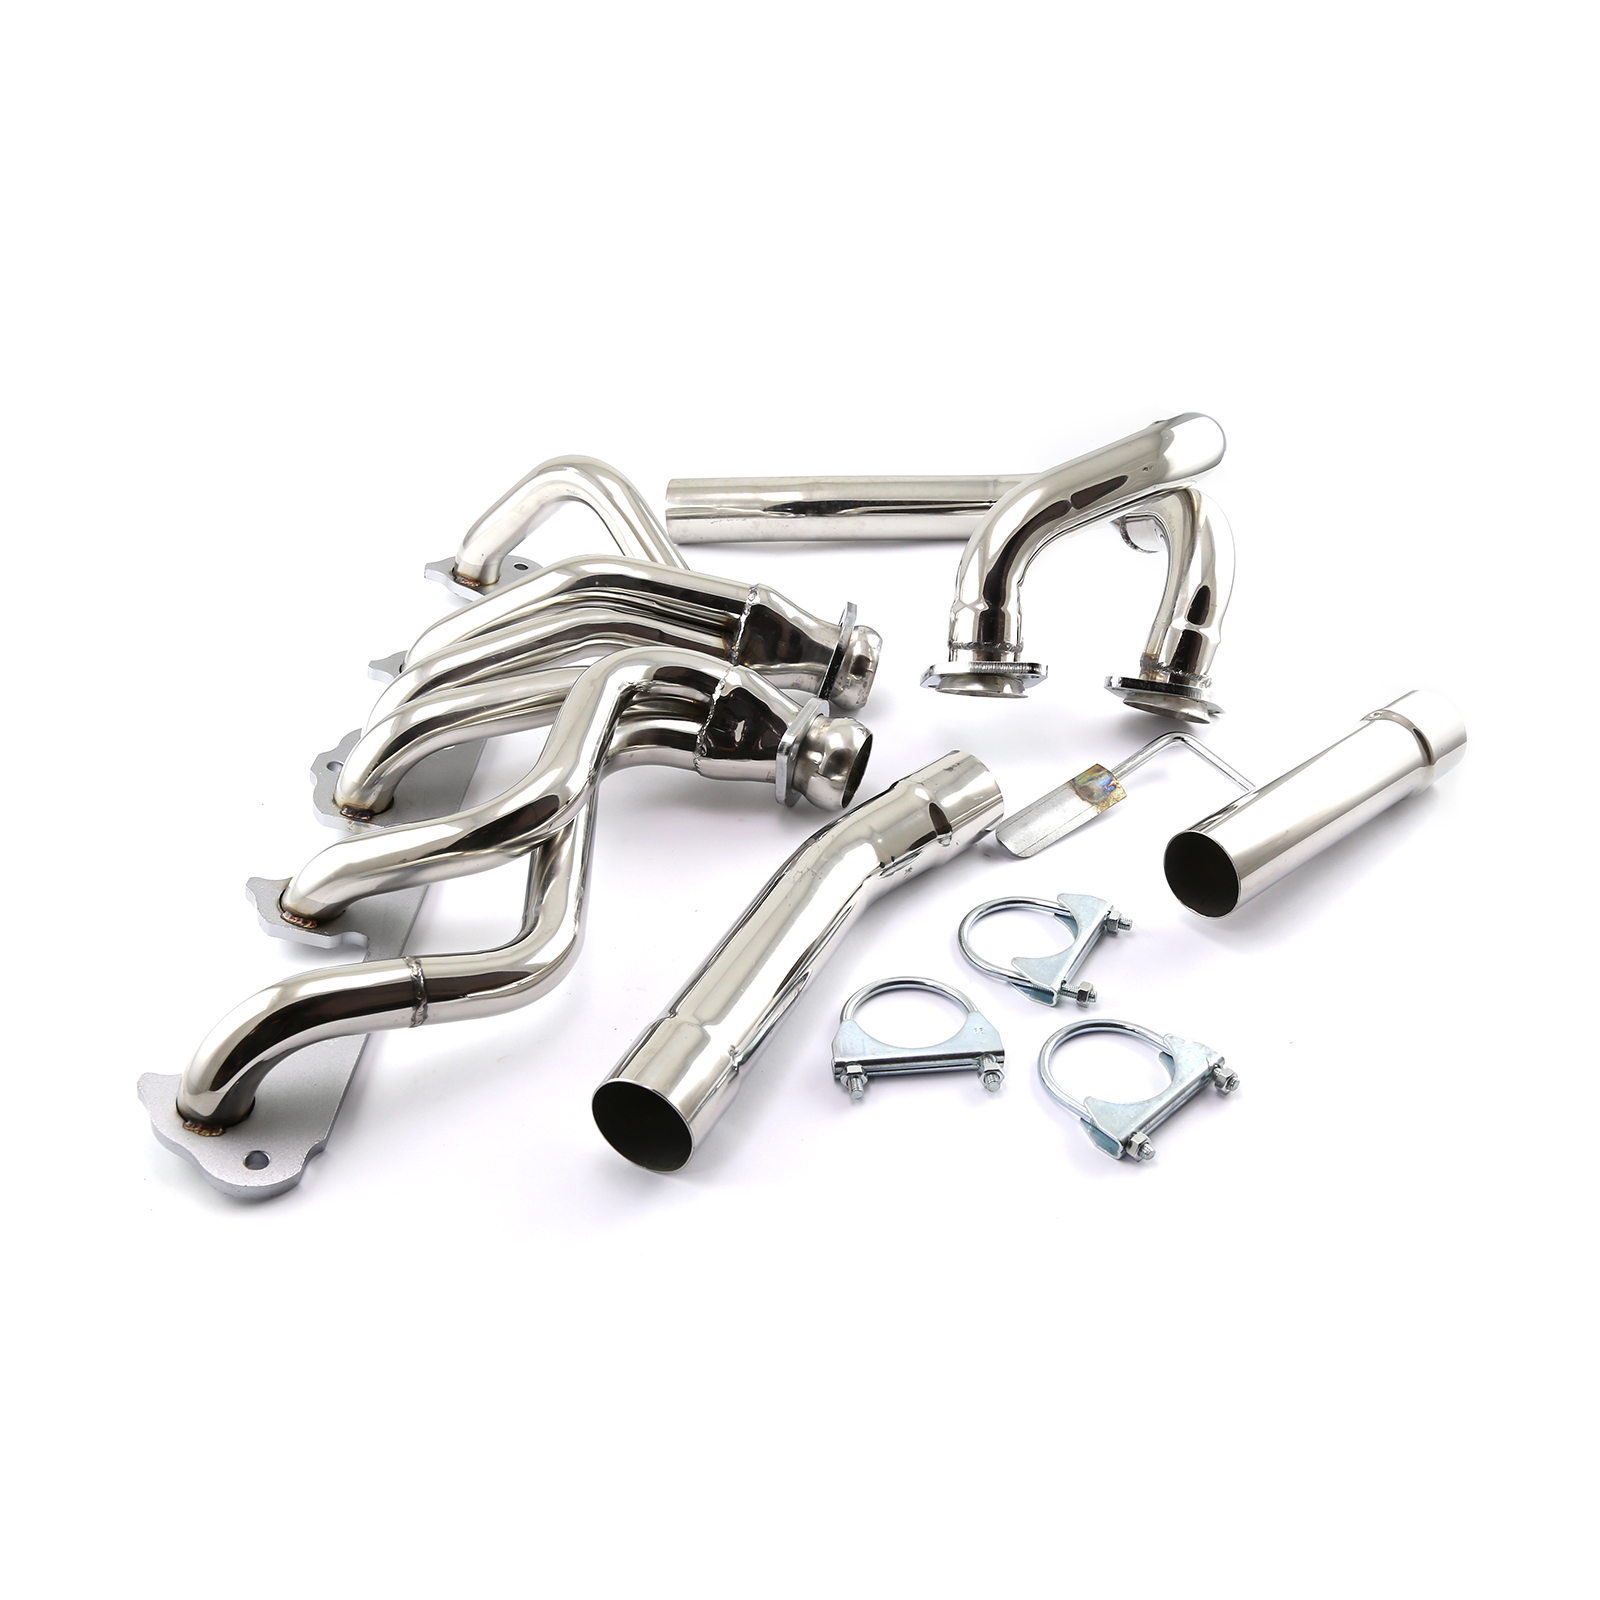 1991 1999 Jeep Wrangler 4.0L Stainless Steel Header & Down Pipe Kit